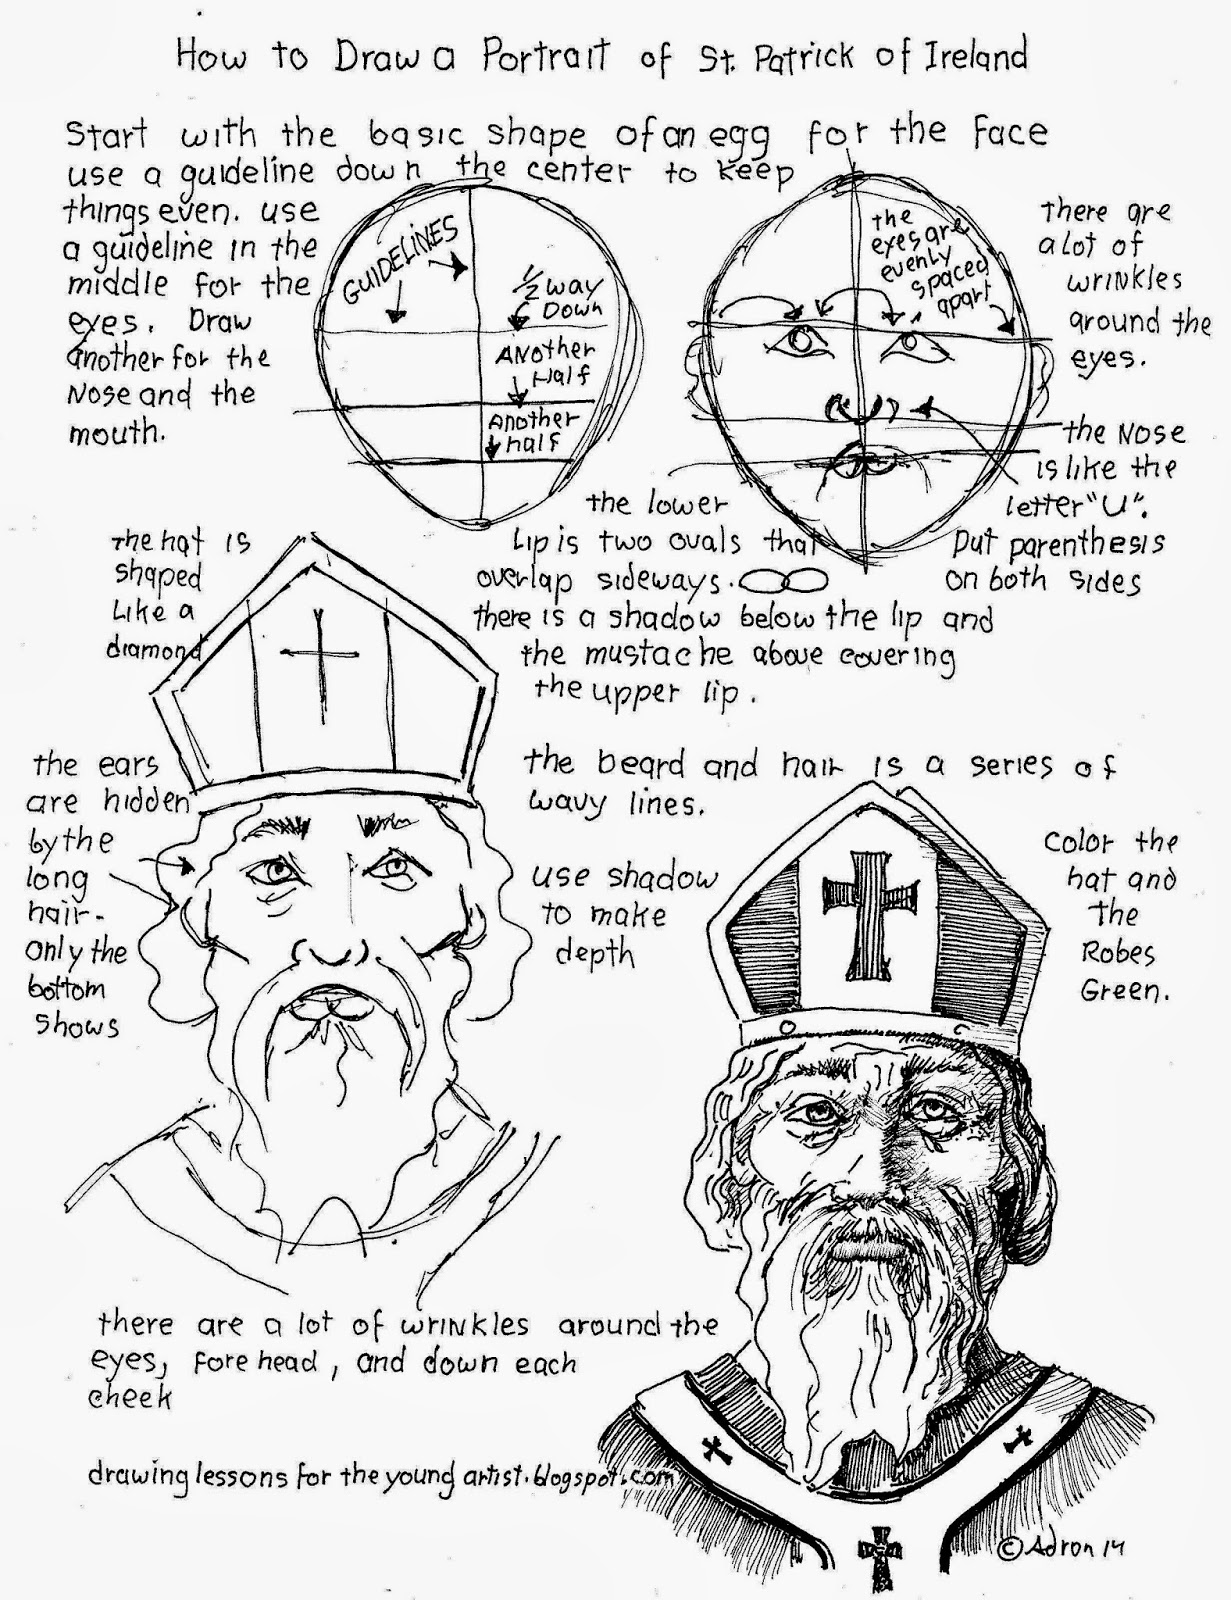 worksheet Draw The Other Half Of The Picture Worksheet how to draw worksheets for the young artist a portrait of st patrick worksheet